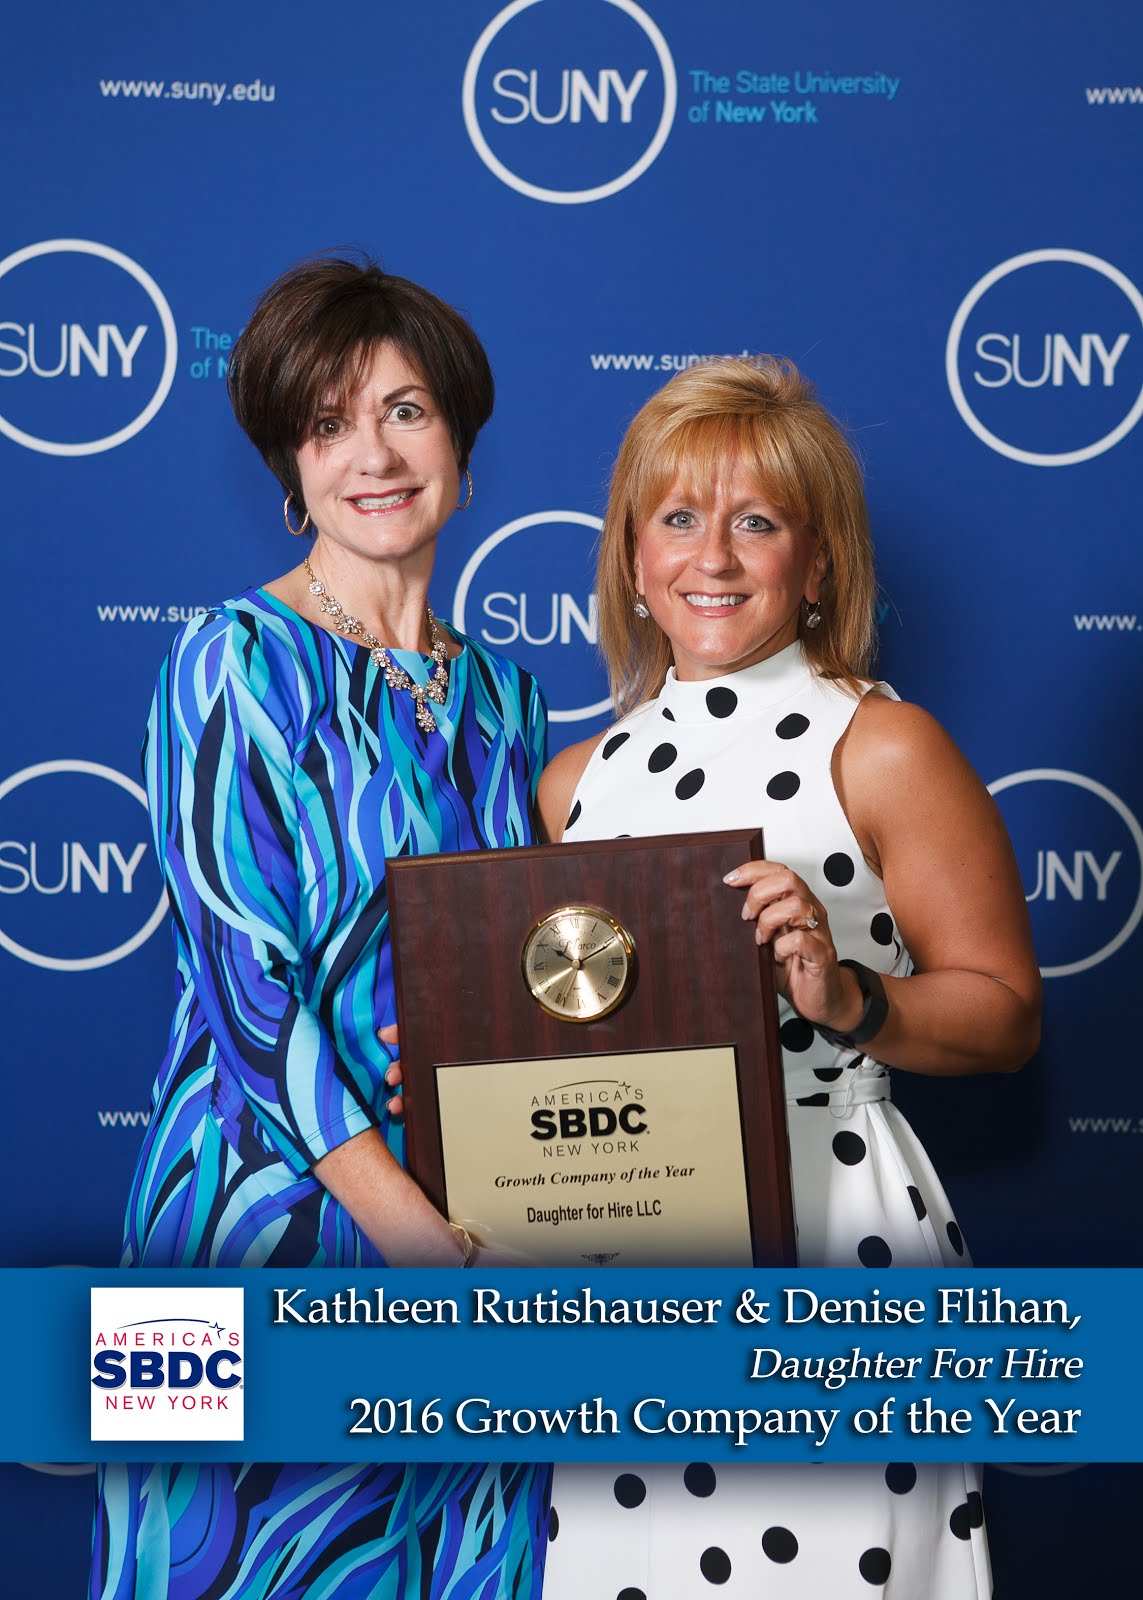 New York SBDC Research Network: NY SBDC Growth Company of the Year